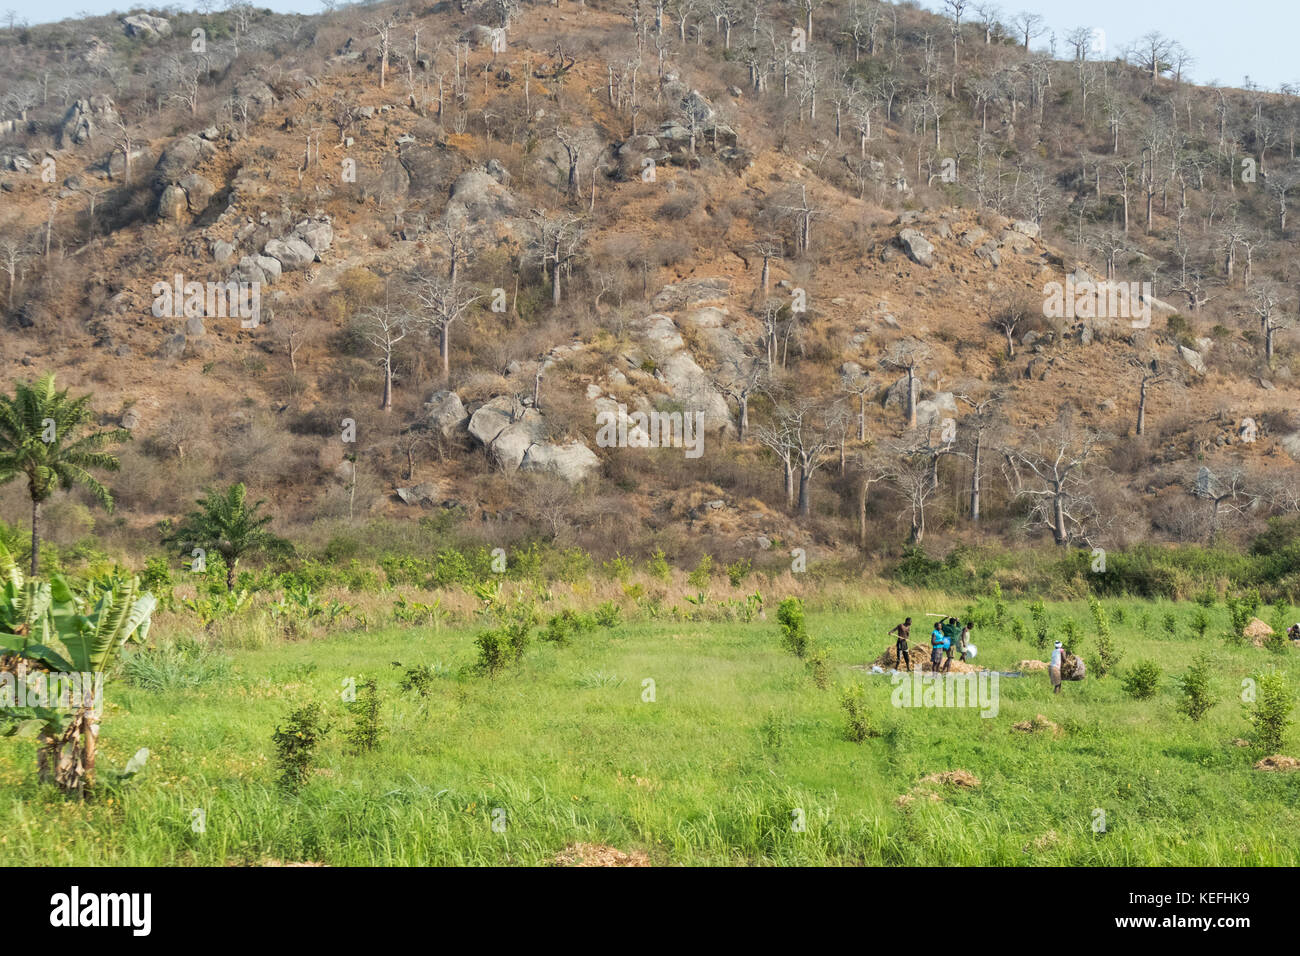 farmers in the field of agriculture. Angola, - Stock Image